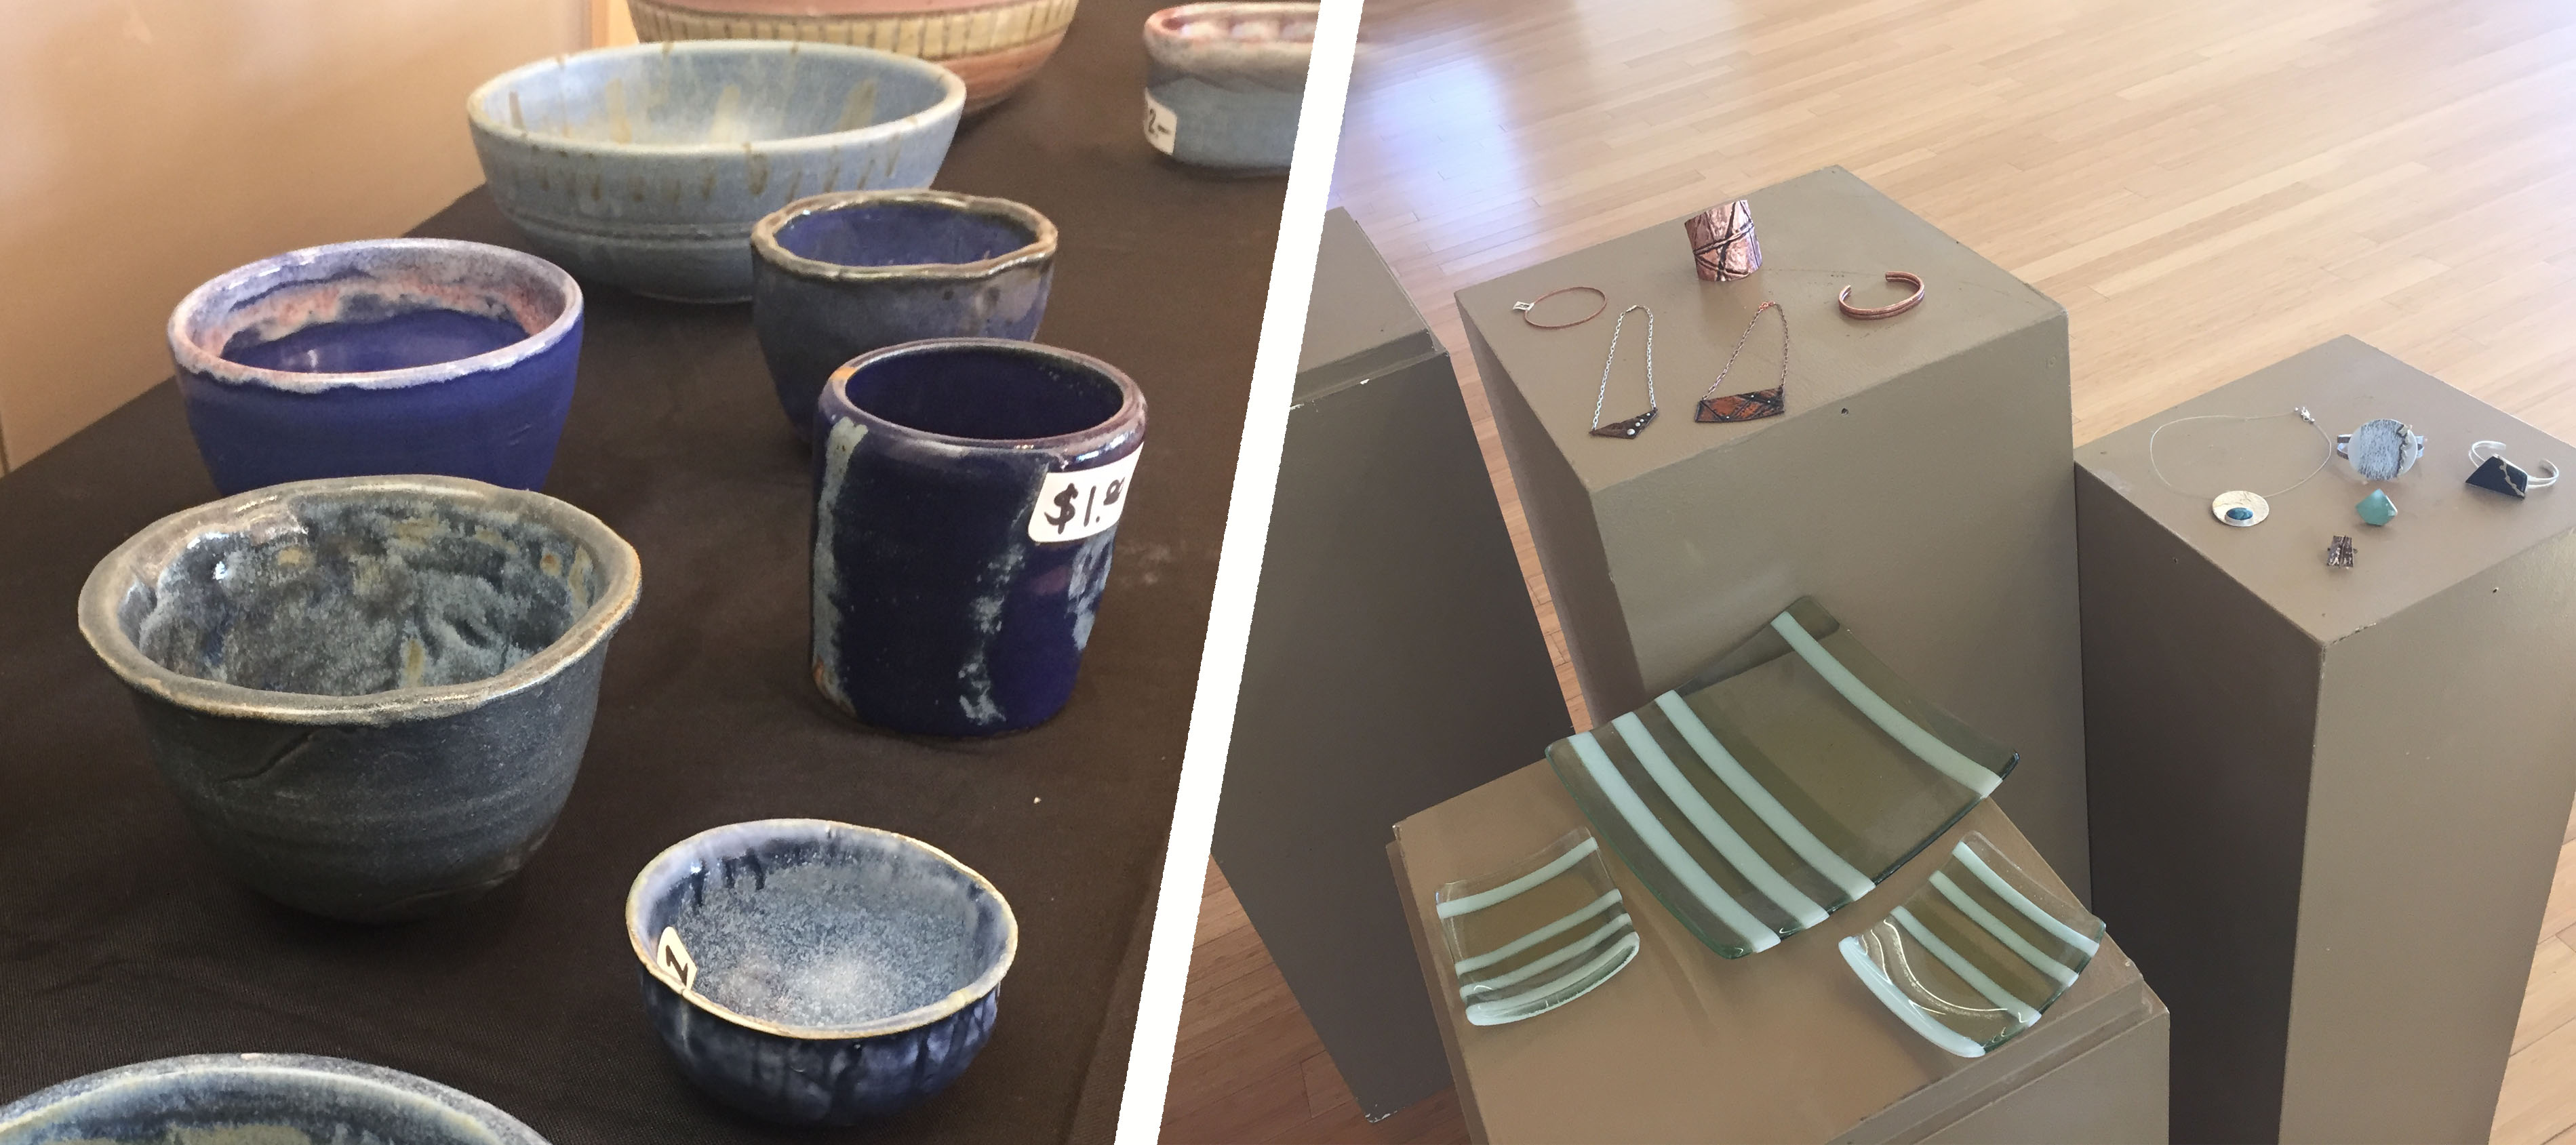 (left) Ceramic cups and bowls sold for $1-4. All products made by students. (right) Authentic jewelry items at show. Some sold for up to hundreds of dollars.